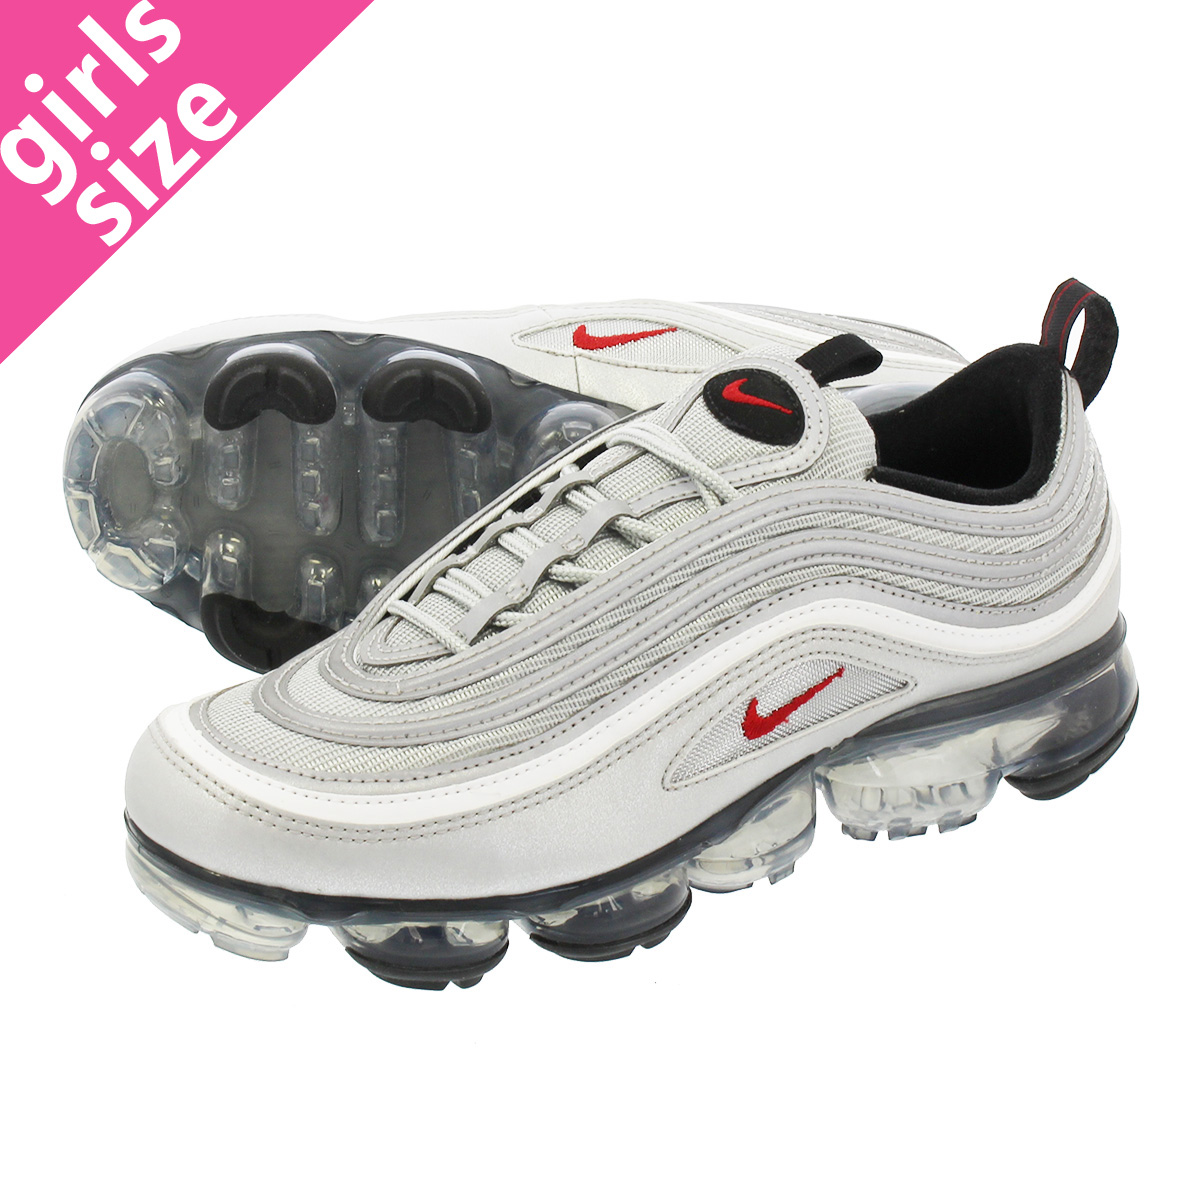 best sneakers 2dd90 fe7f8 LOWTEX PLUS: NIKE AIR VAPORMAX 97 Nike air vapor max 97 ...